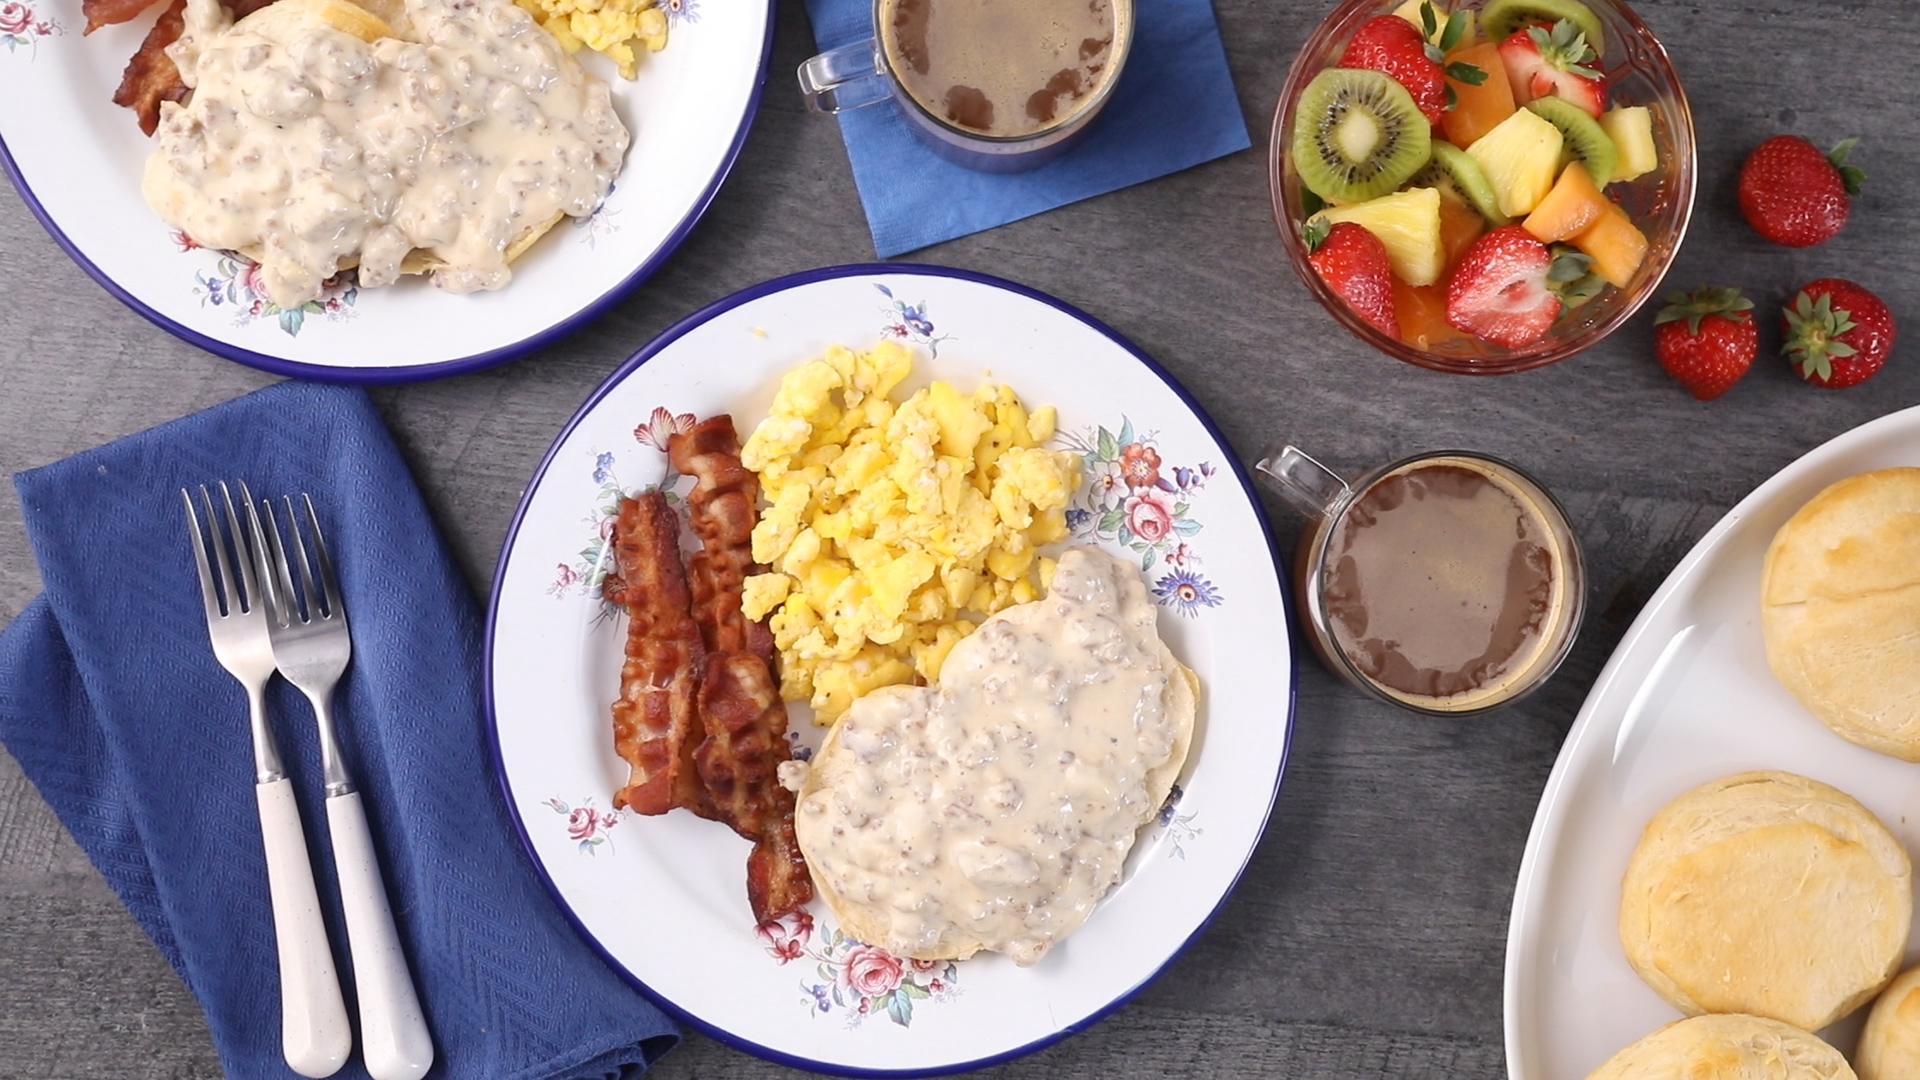 Sausage Biscuits and Gravy - Printer Friendly